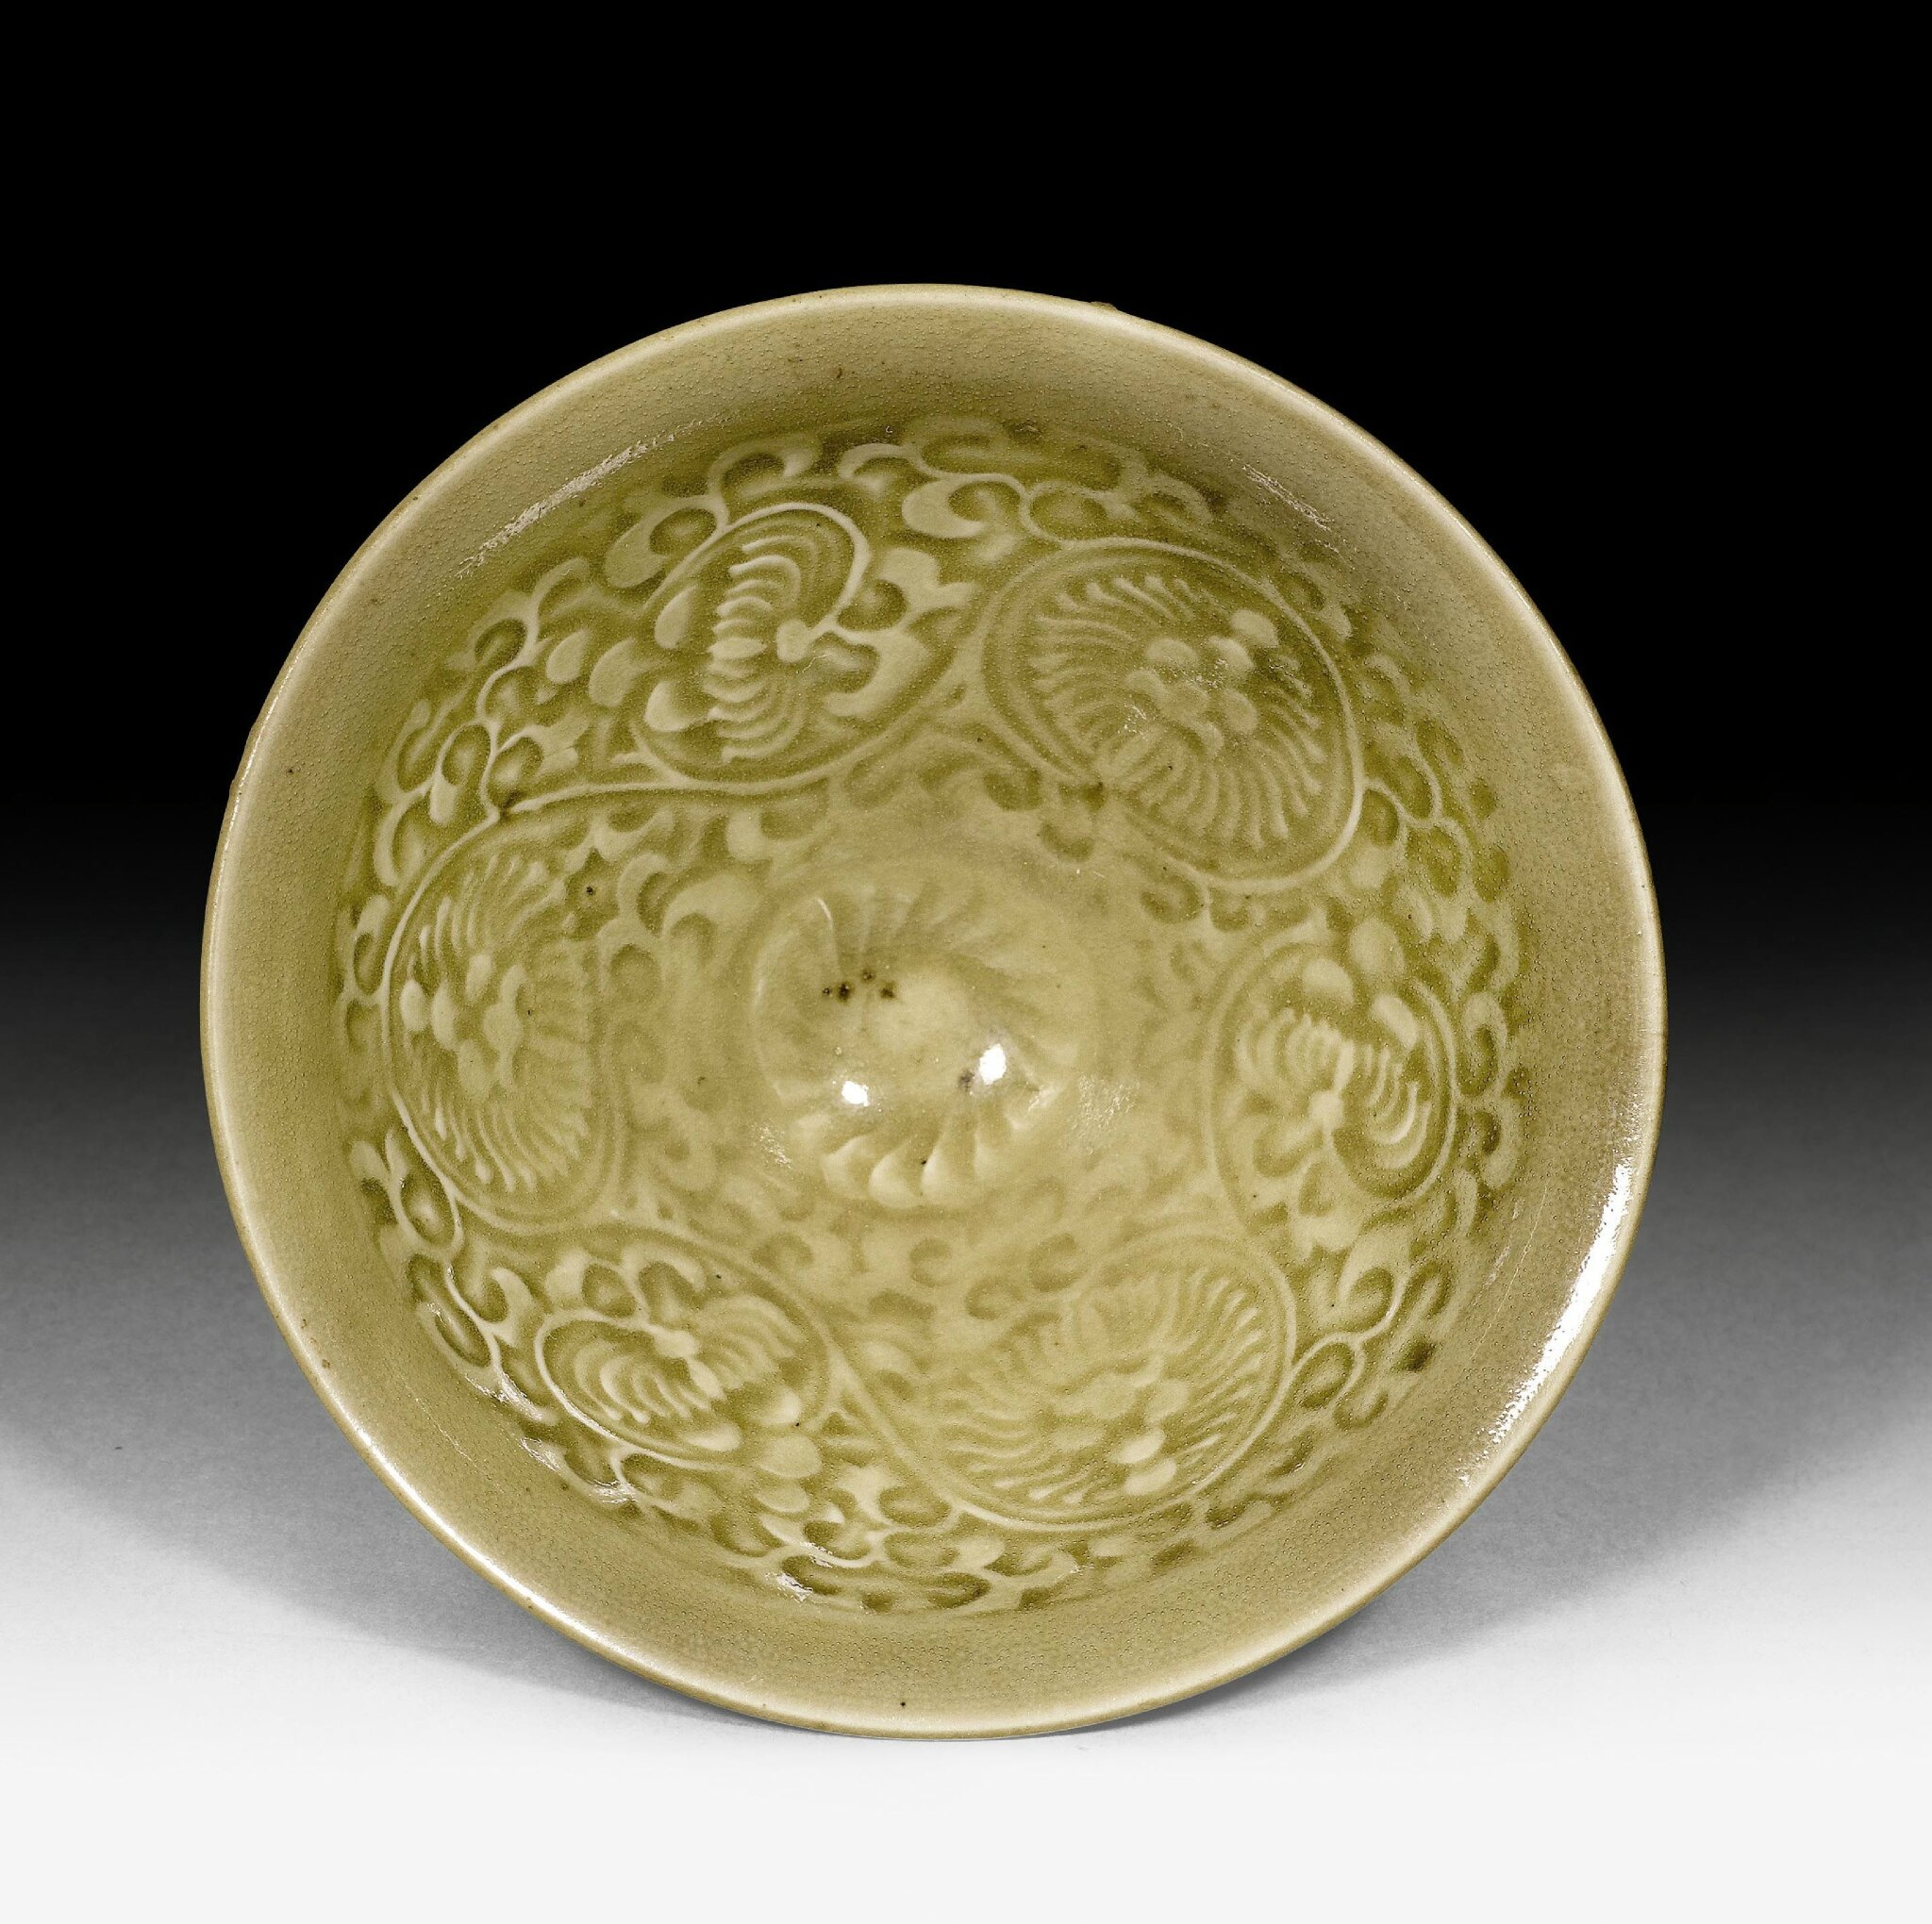 A small celadon glazed Yaozhou bowl with floral spray inside, China, Song dynasty